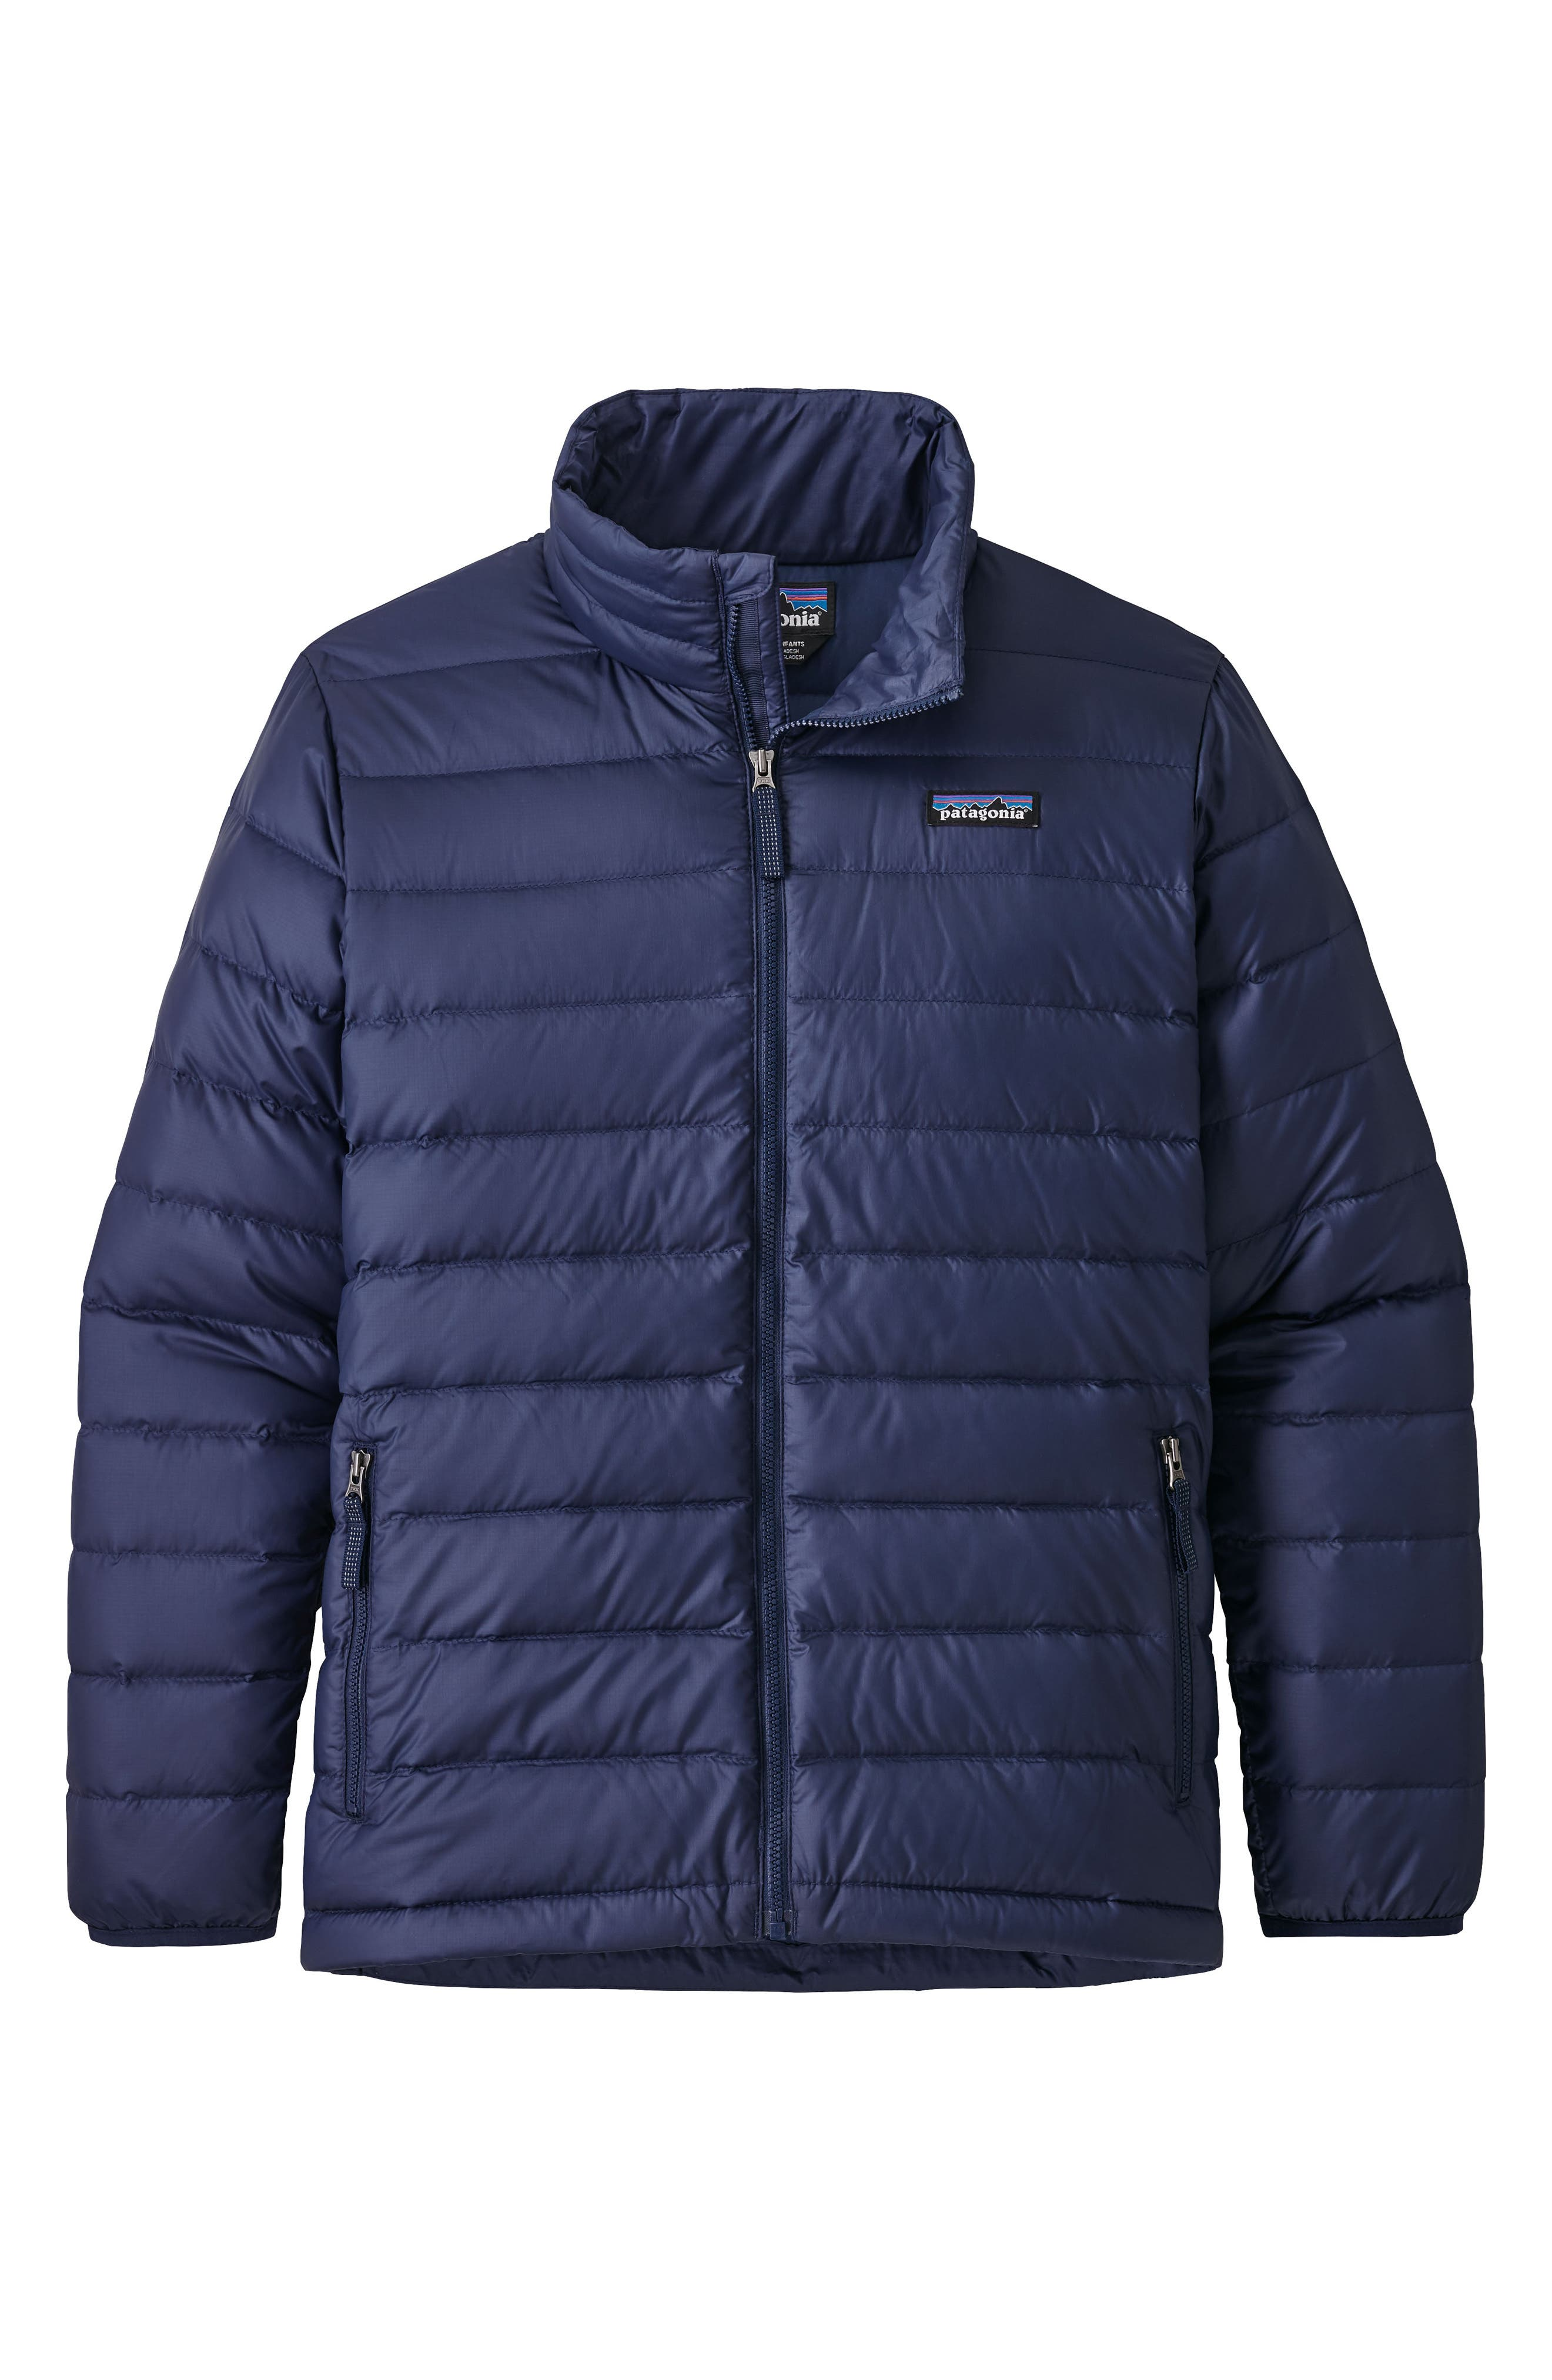 Down Sweater Jacket,                         Main,                         color, NAVY